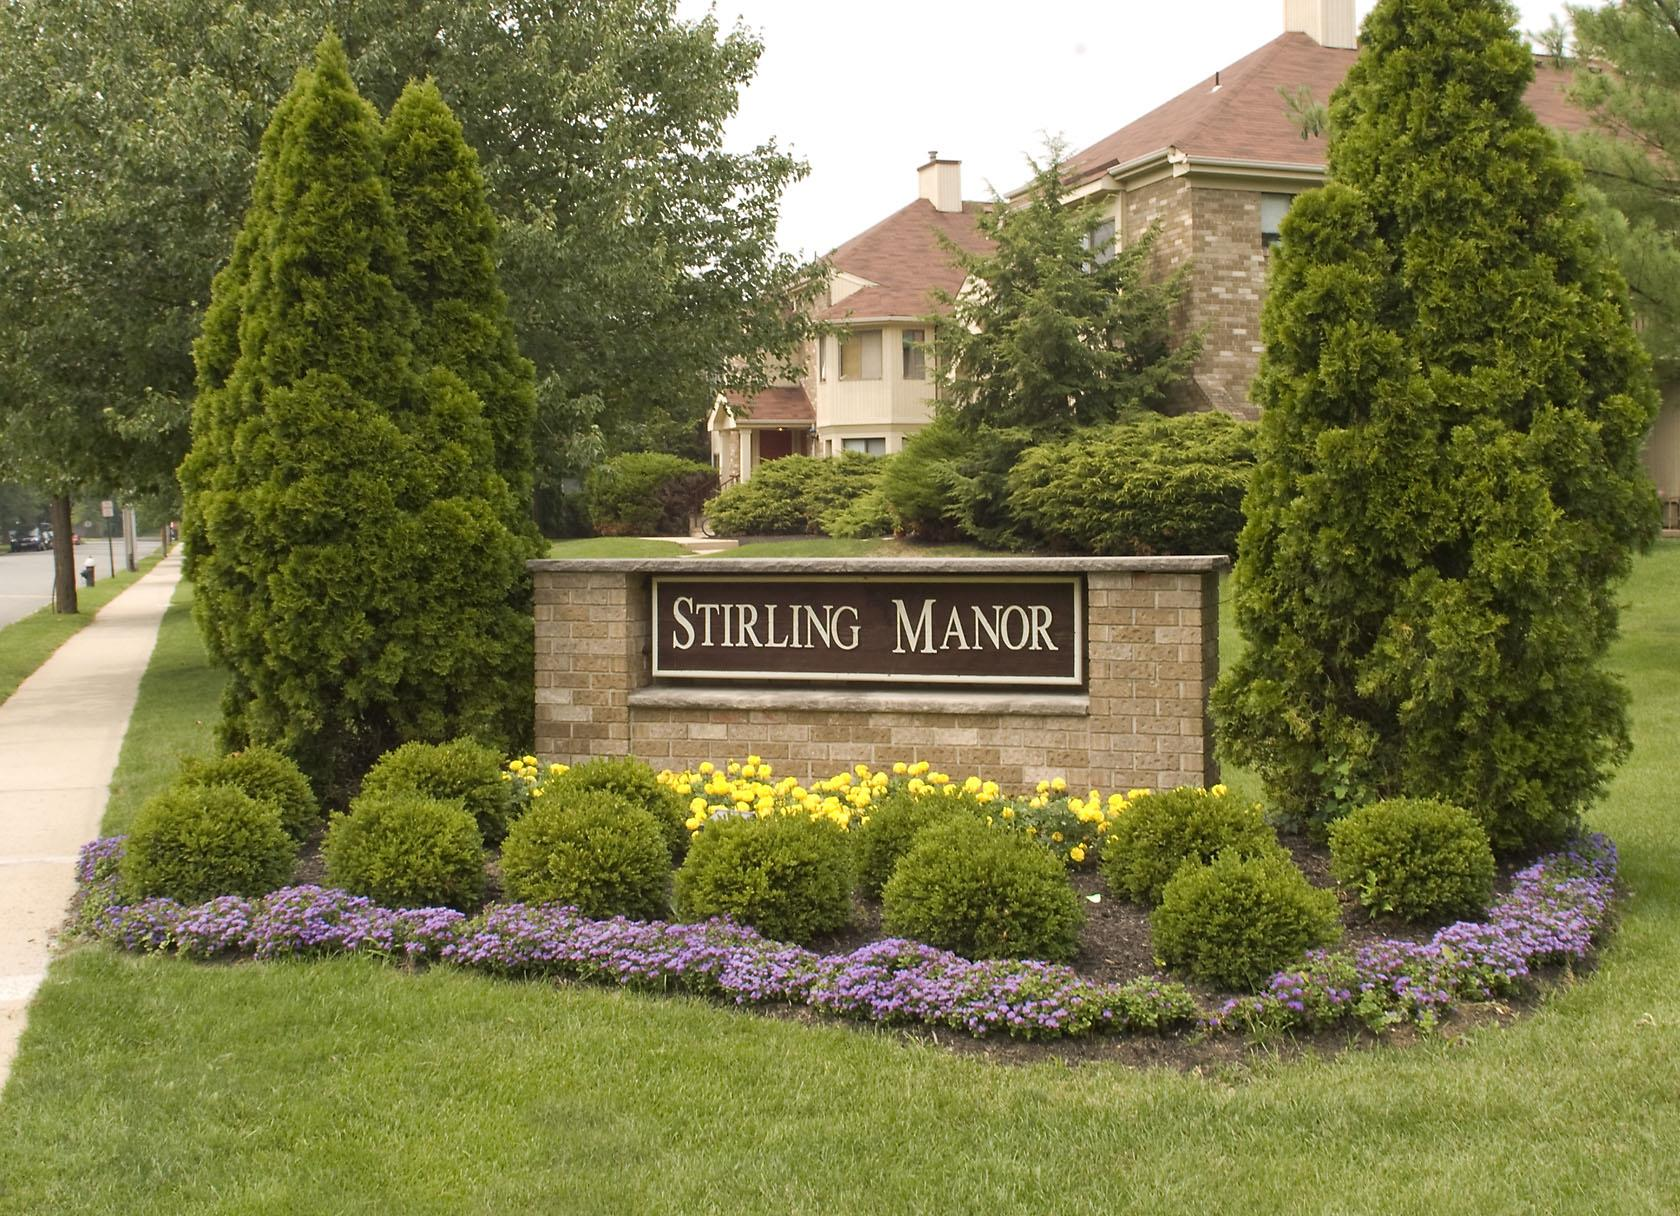 Images of Stirling Manor Associates